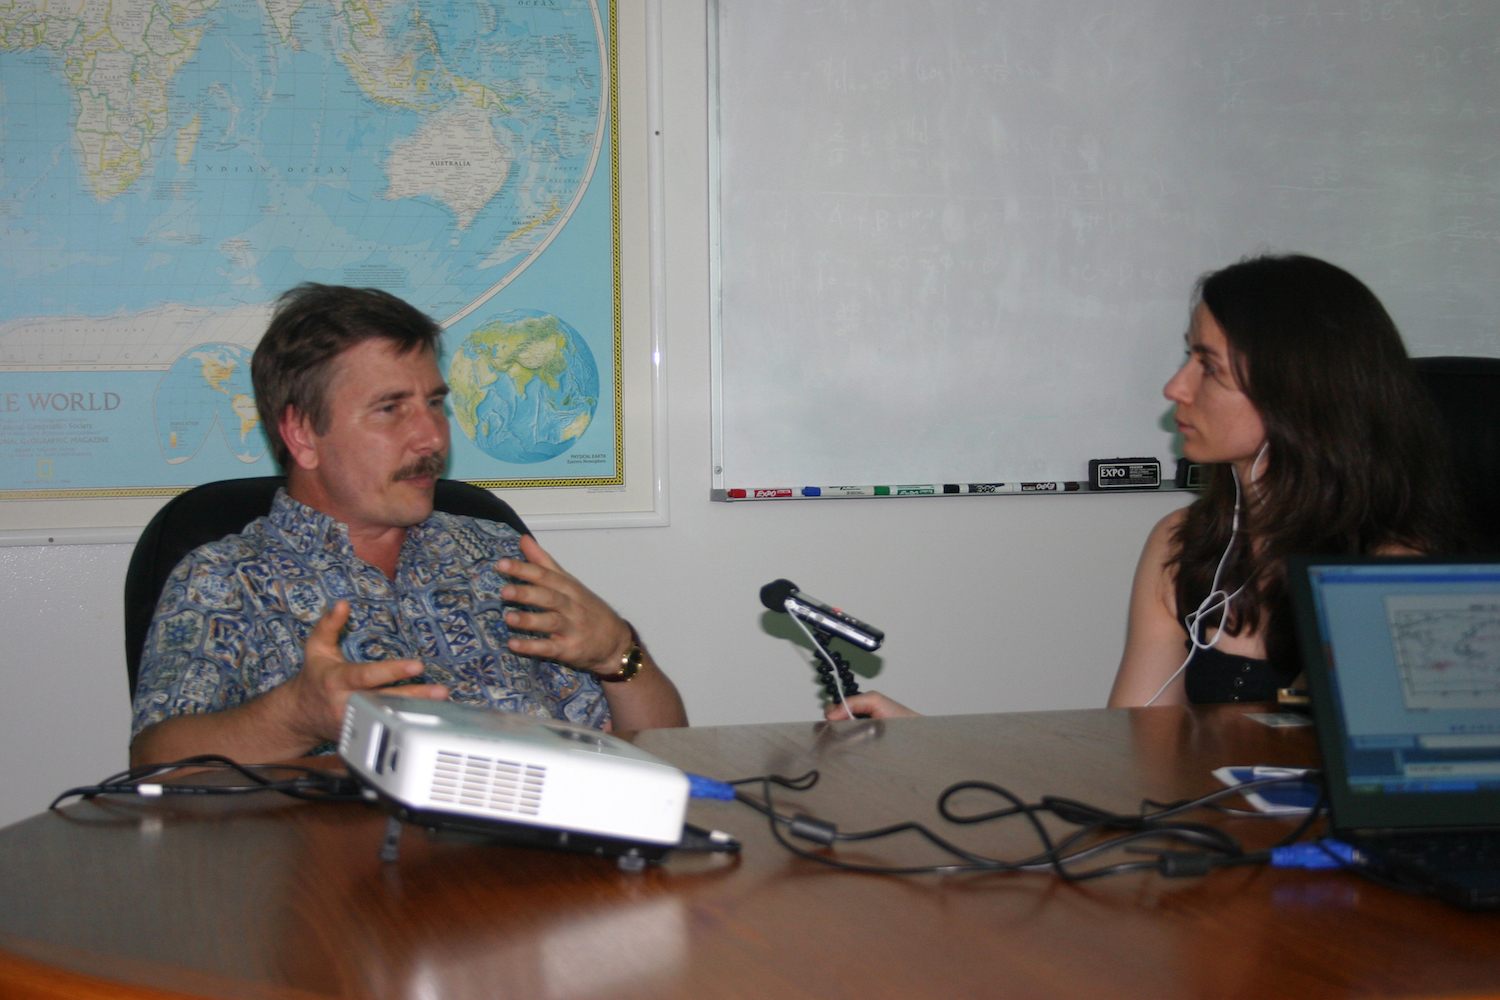 Interviewing Nikolai Maximenko at the International Pacific Research Center on Oahu in 2011. Picture: Gisela Speidel (IPRC)